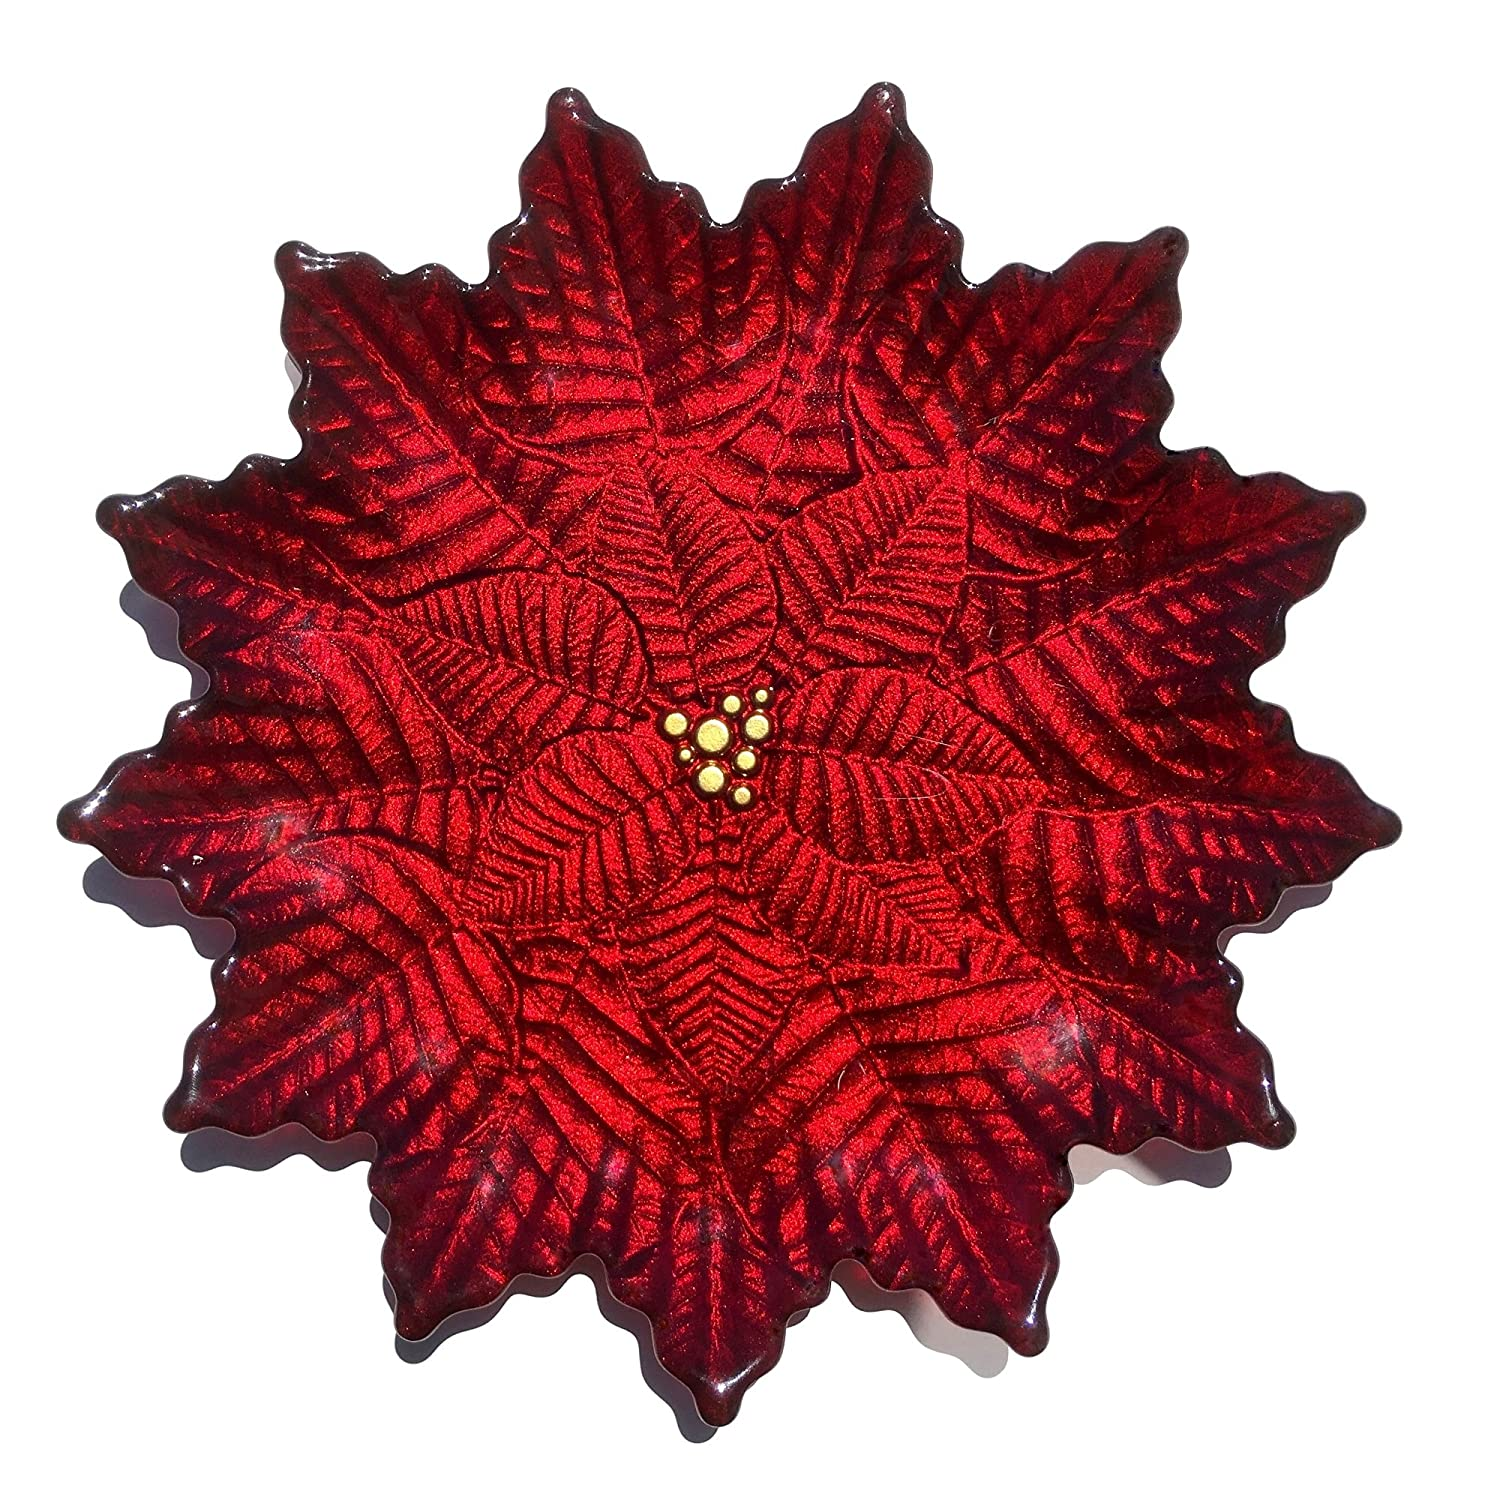 Red Pomegranate 2852-4 Poinsettia Salad Plates (Set of 2), Gold